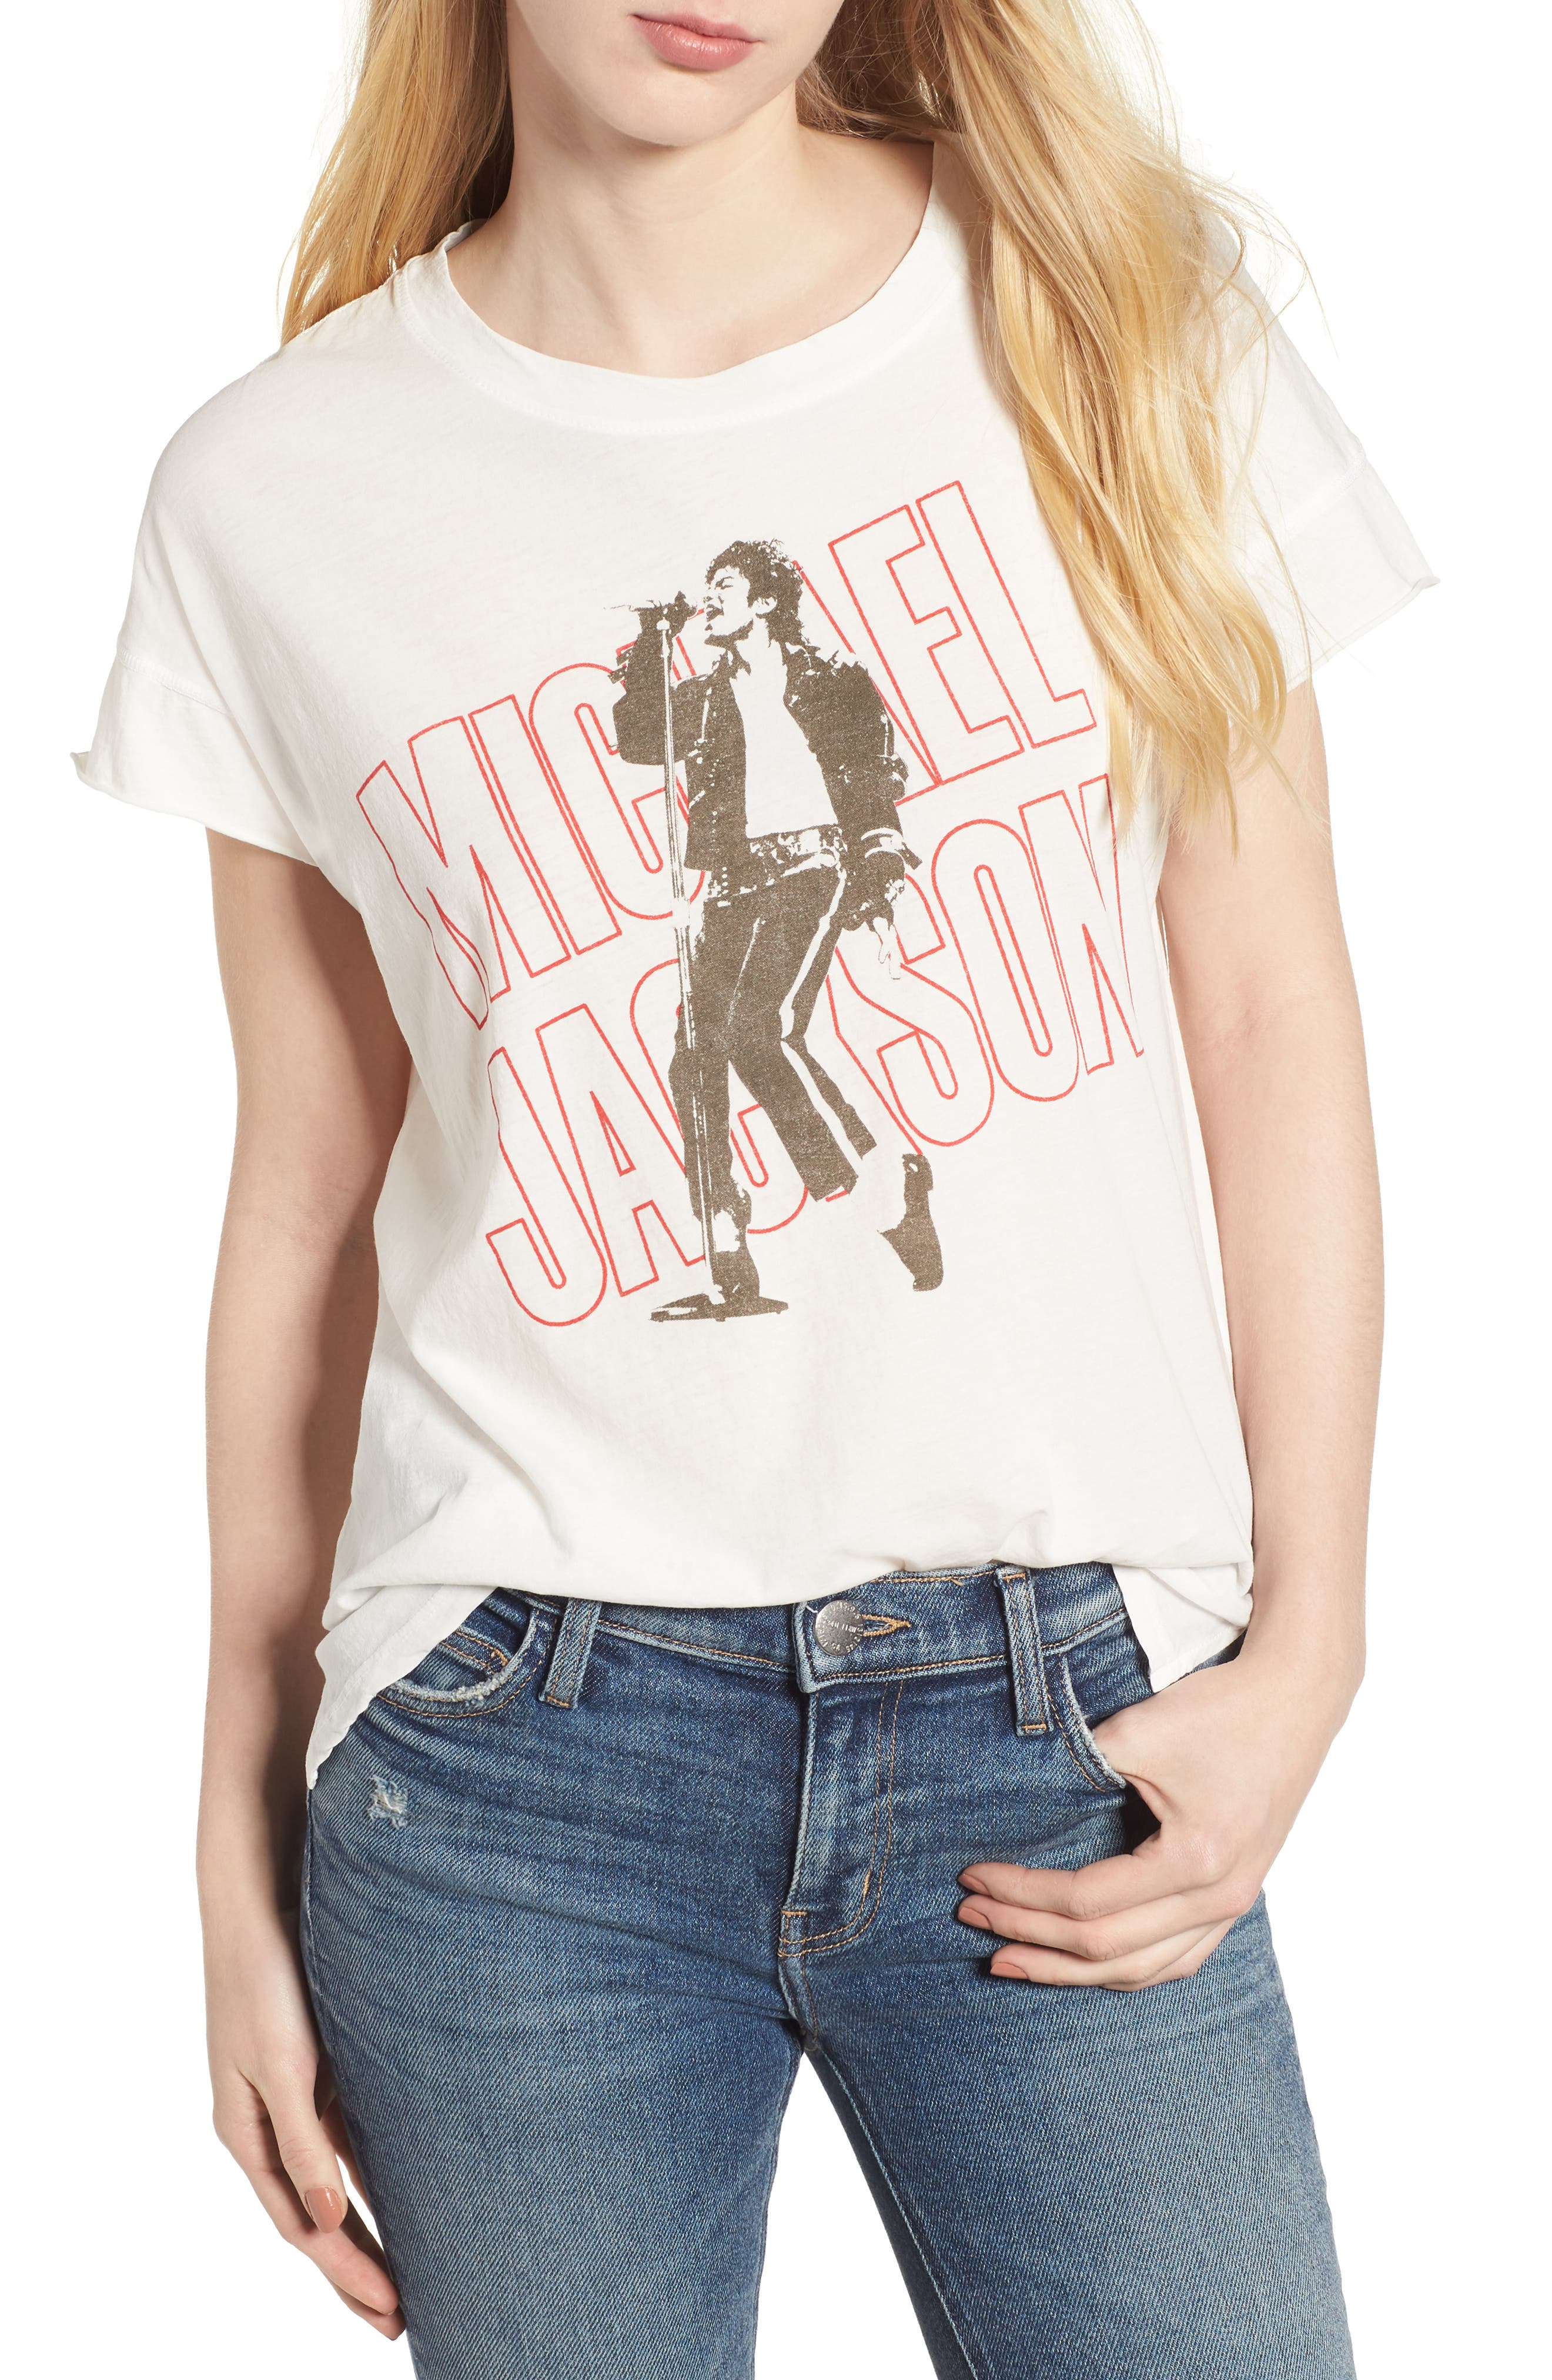 Michael Jackson Tee,                             Main thumbnail 1, color,                             Vintage White